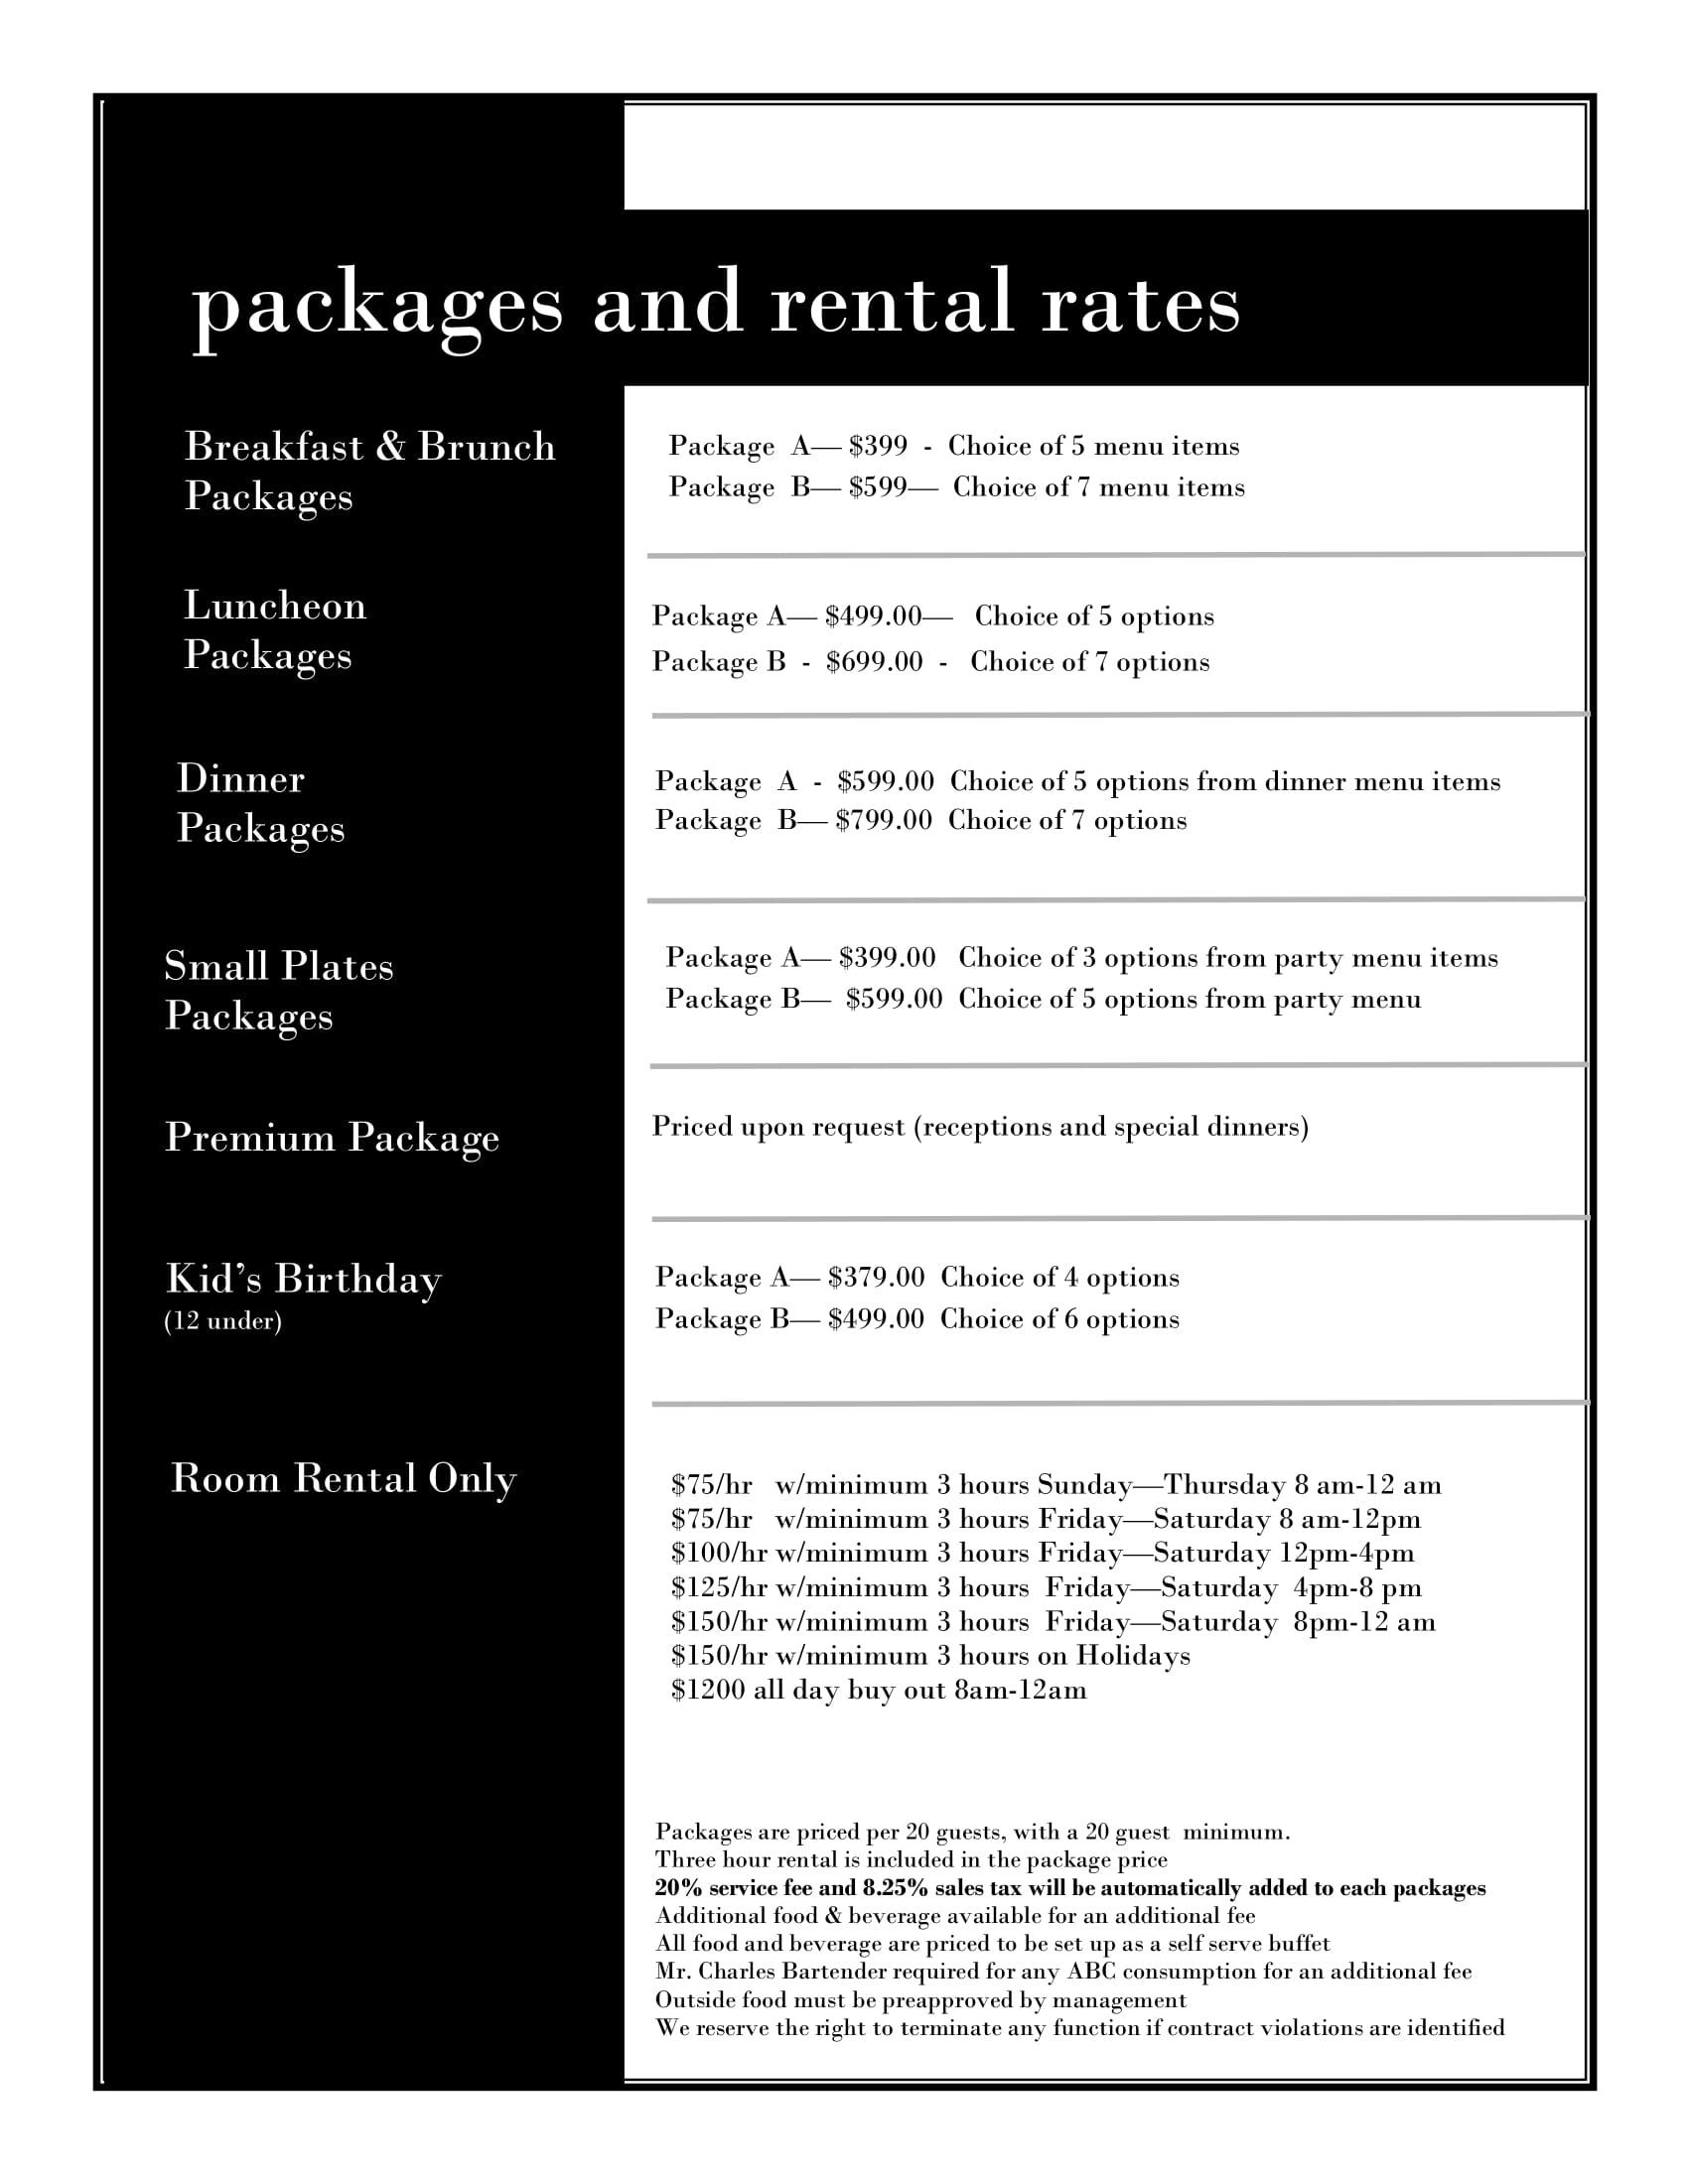 Package and Rental Rates - click for readable PDF